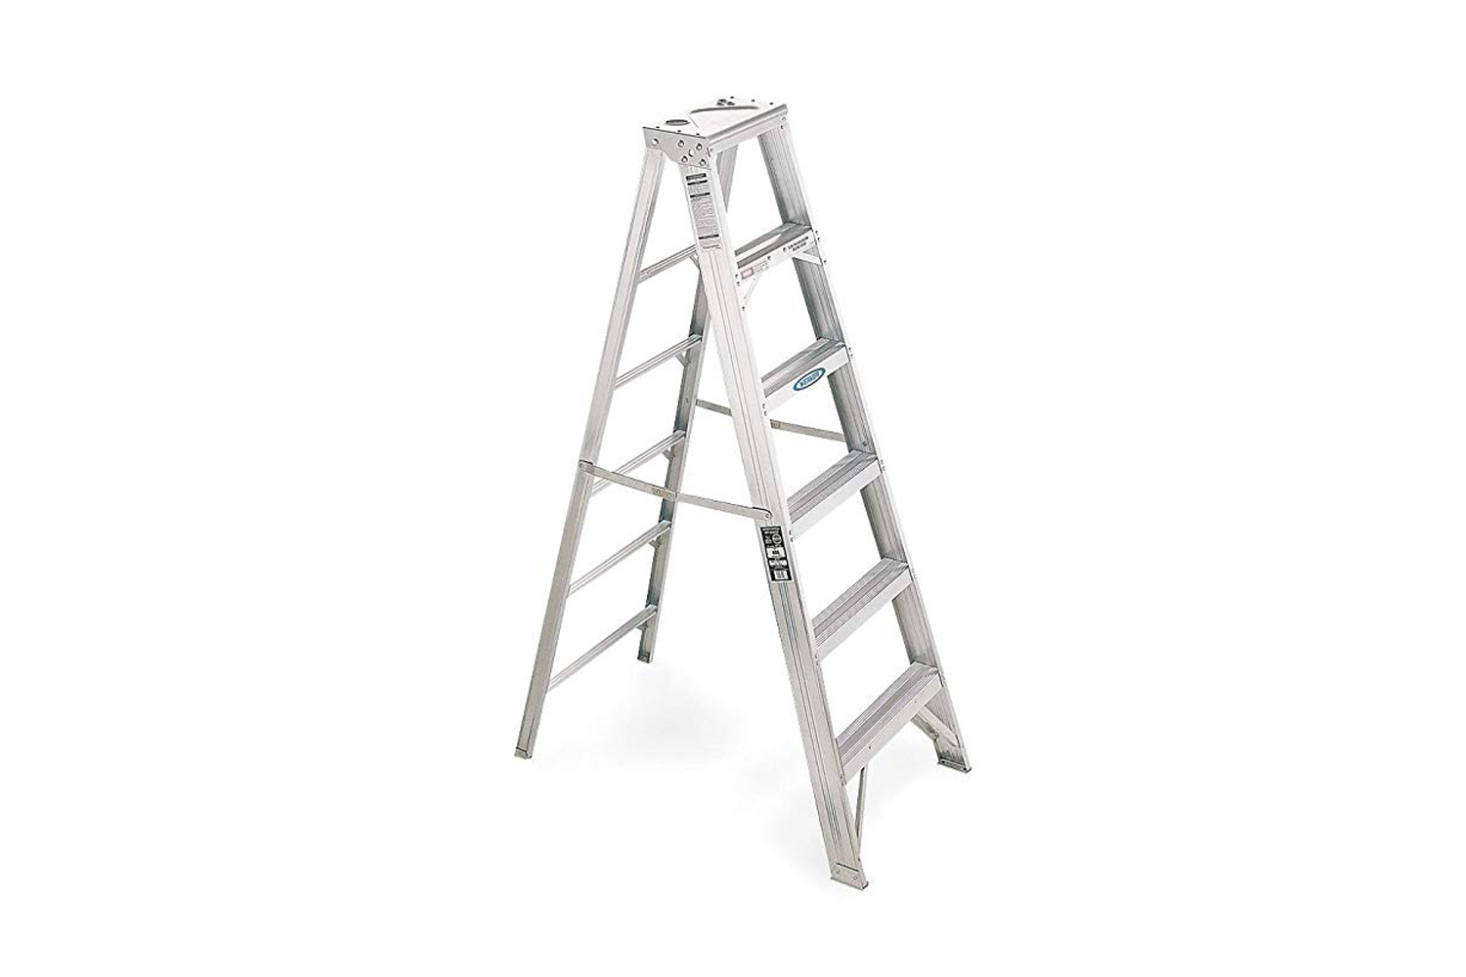 above: The straightforward 6-Foot Aluminum Step Ladder from Werner for $6.99 on Amazon. Also available are 8-, -, and src=